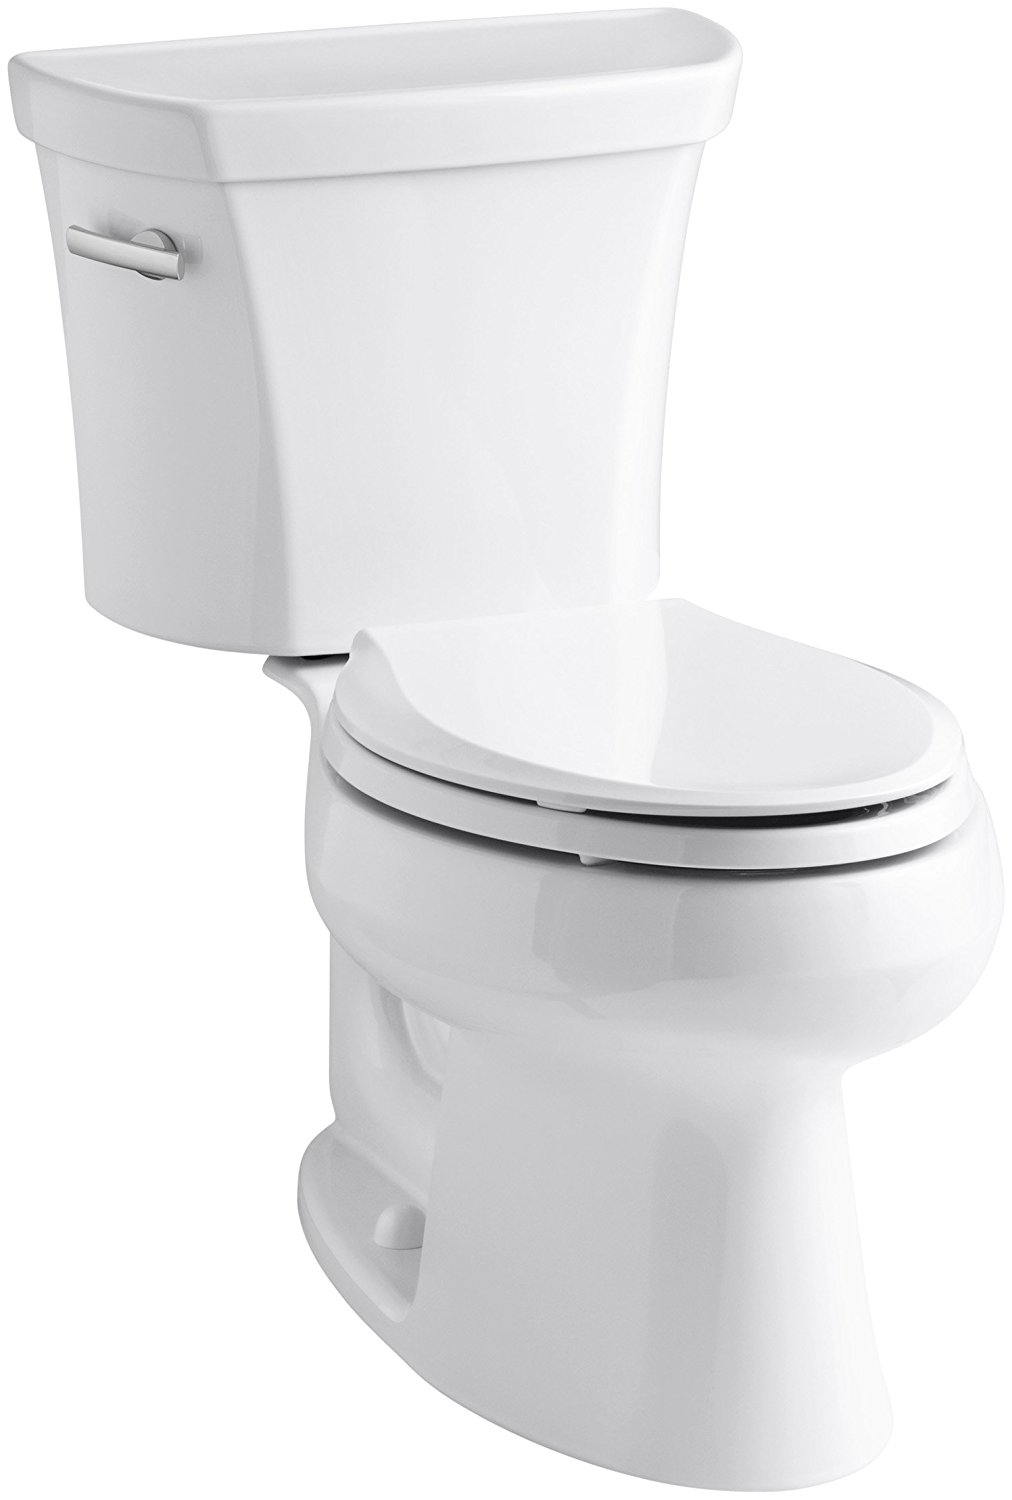 Kohler K-3978-0 Wellworth Elongated 1.6 gpf Toilet, White